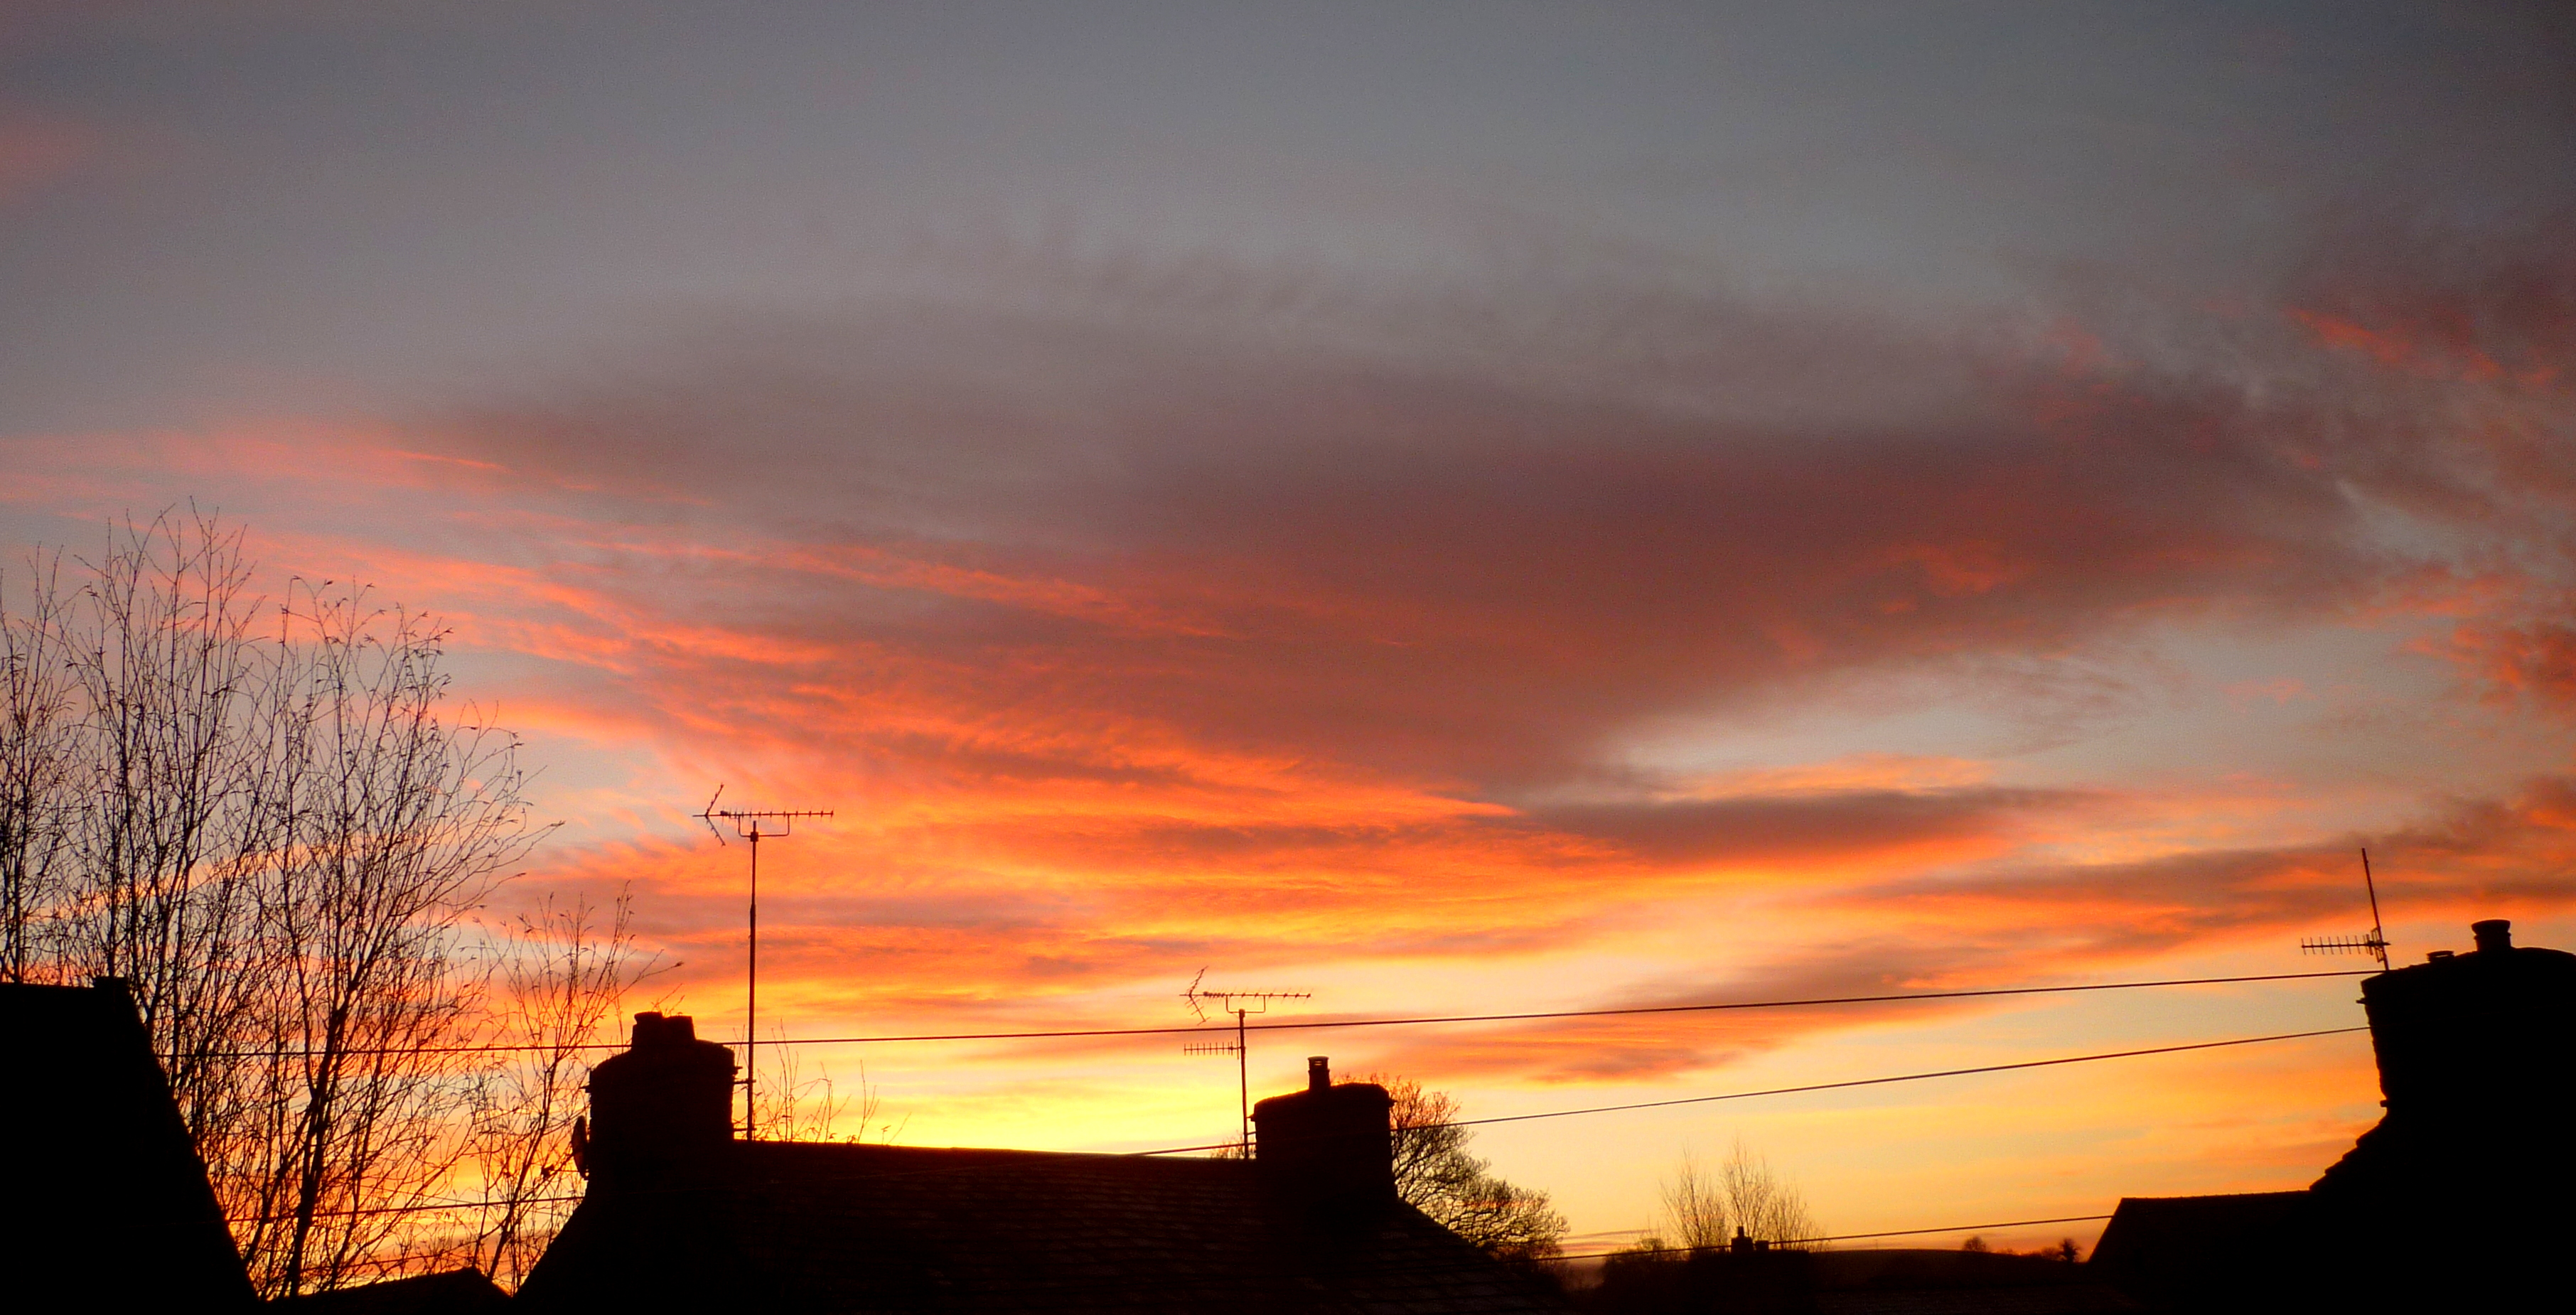 Red sky end to sunny day.